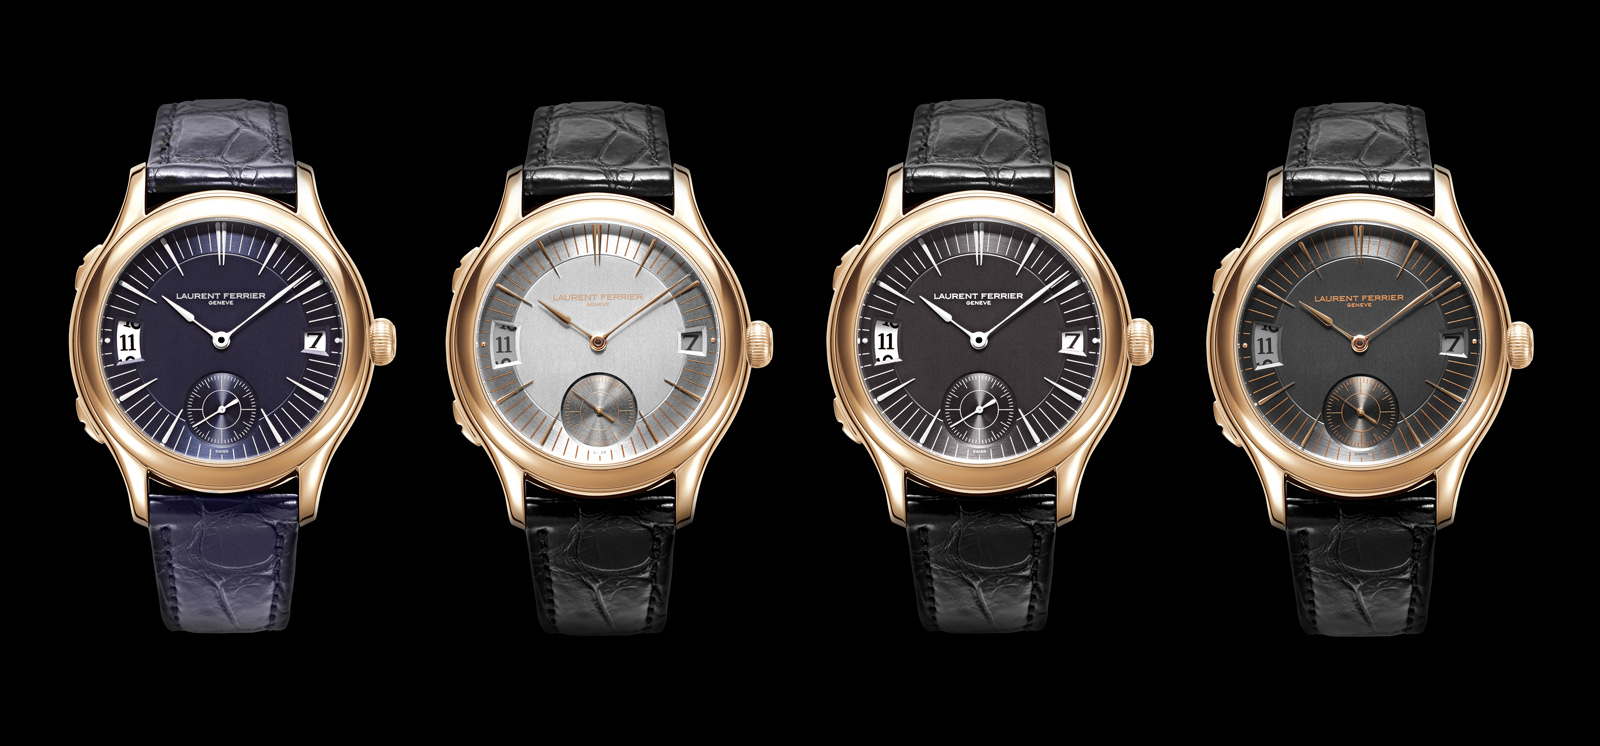 Laurent Ferrier Galet Traveller variations